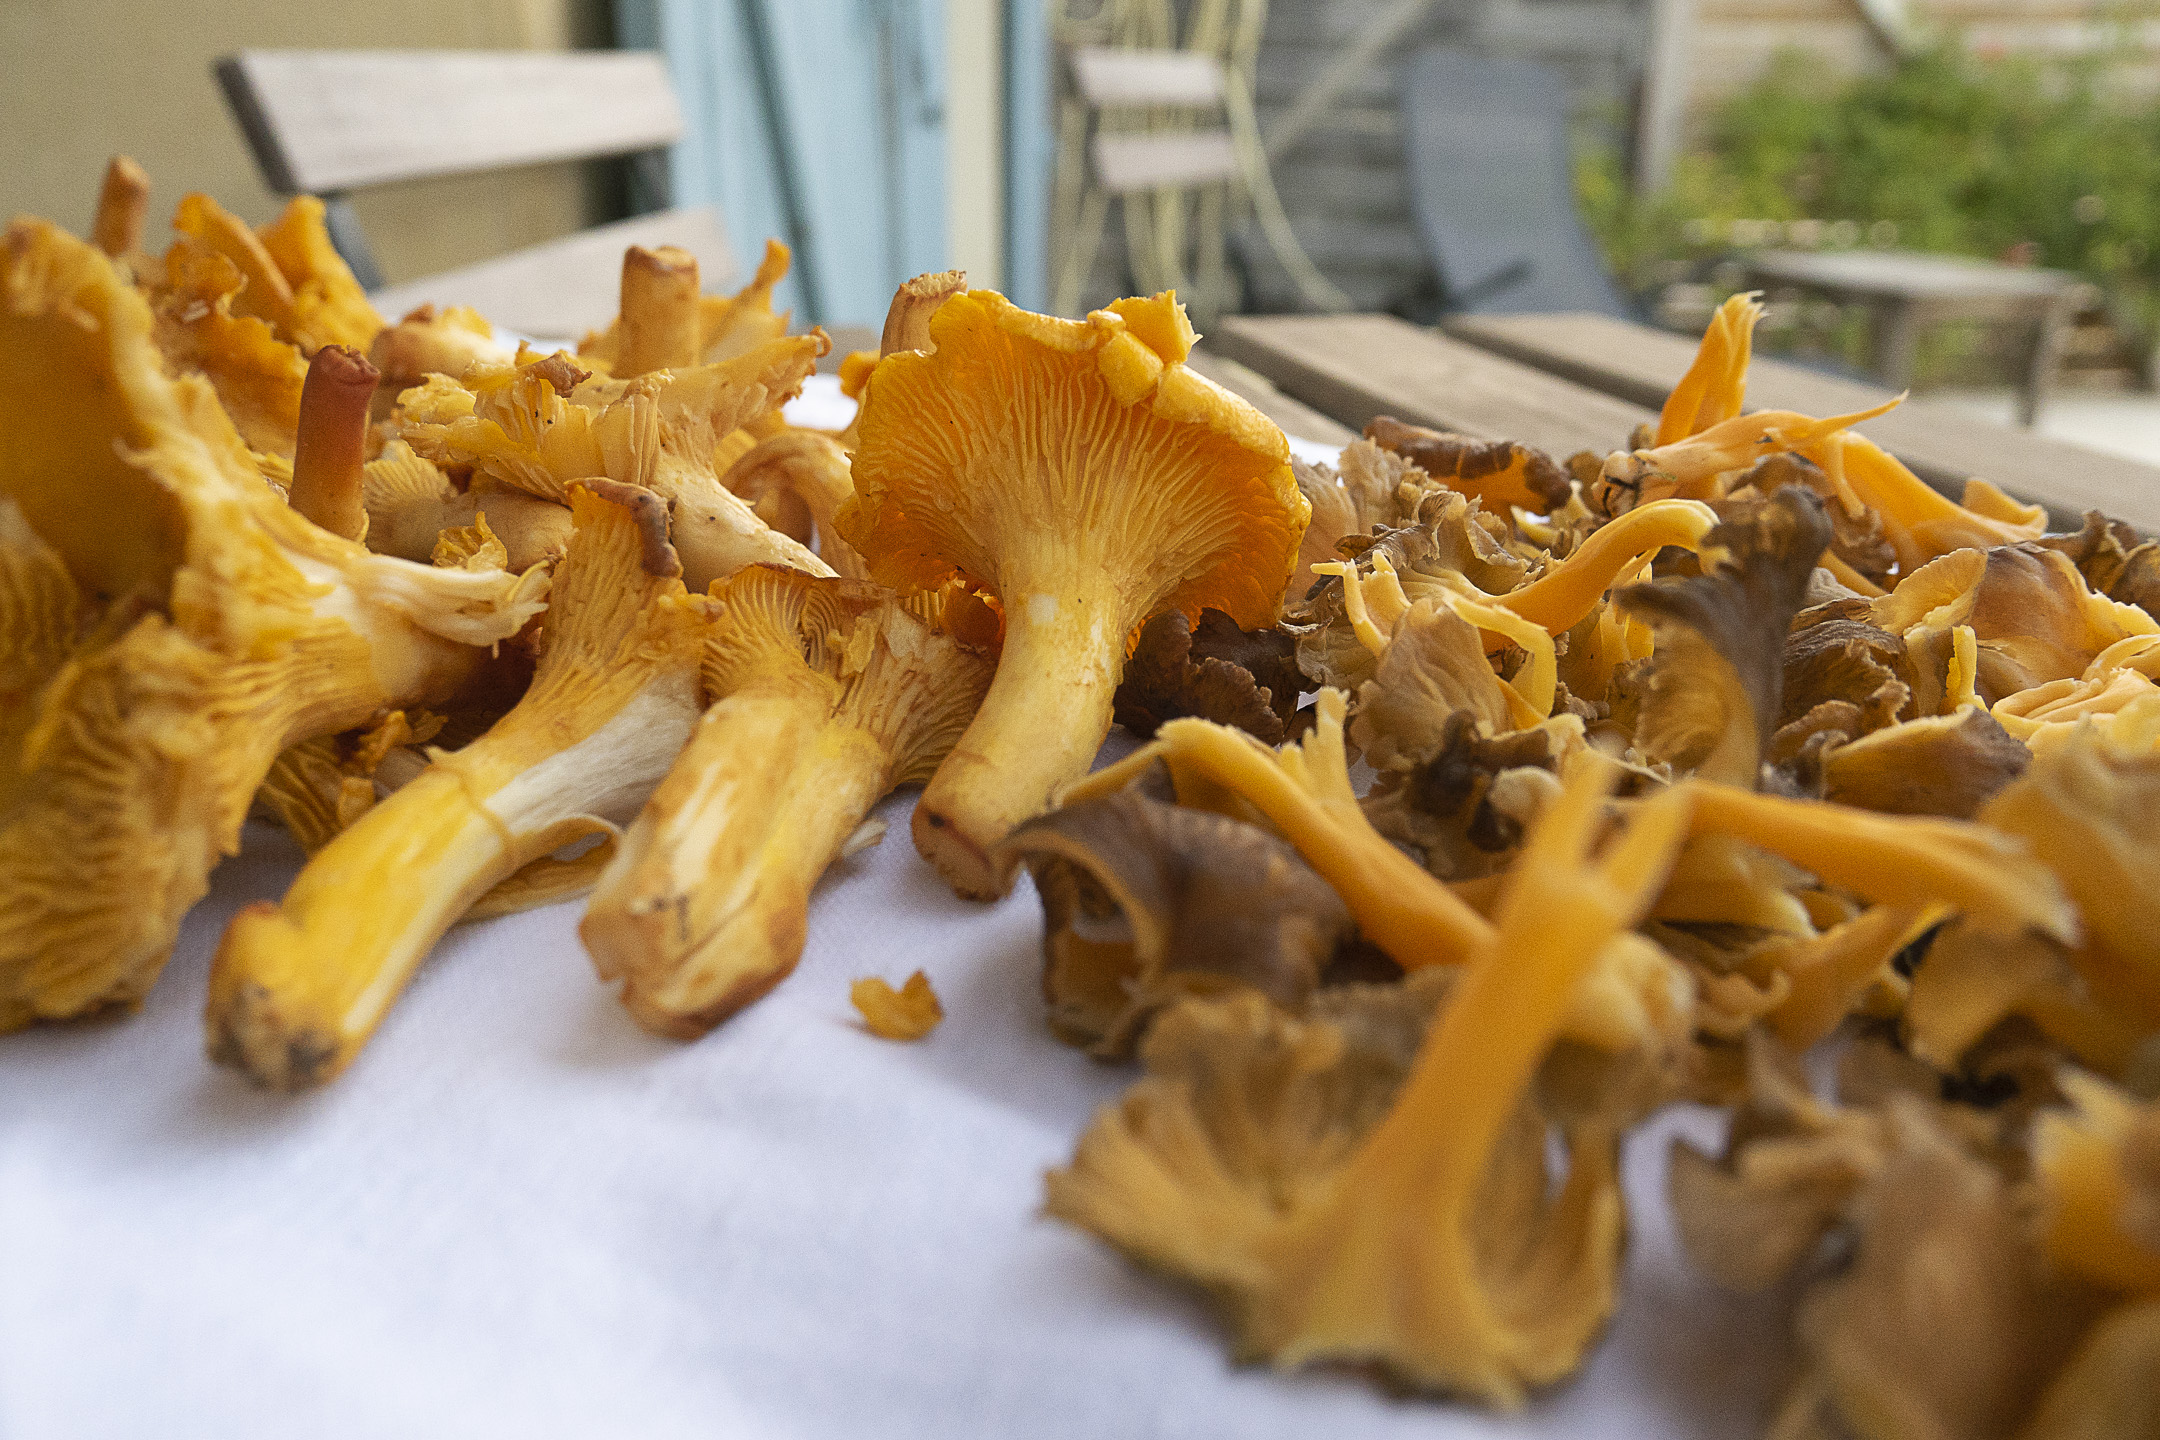 Chanterelles are easy to indulge in here.